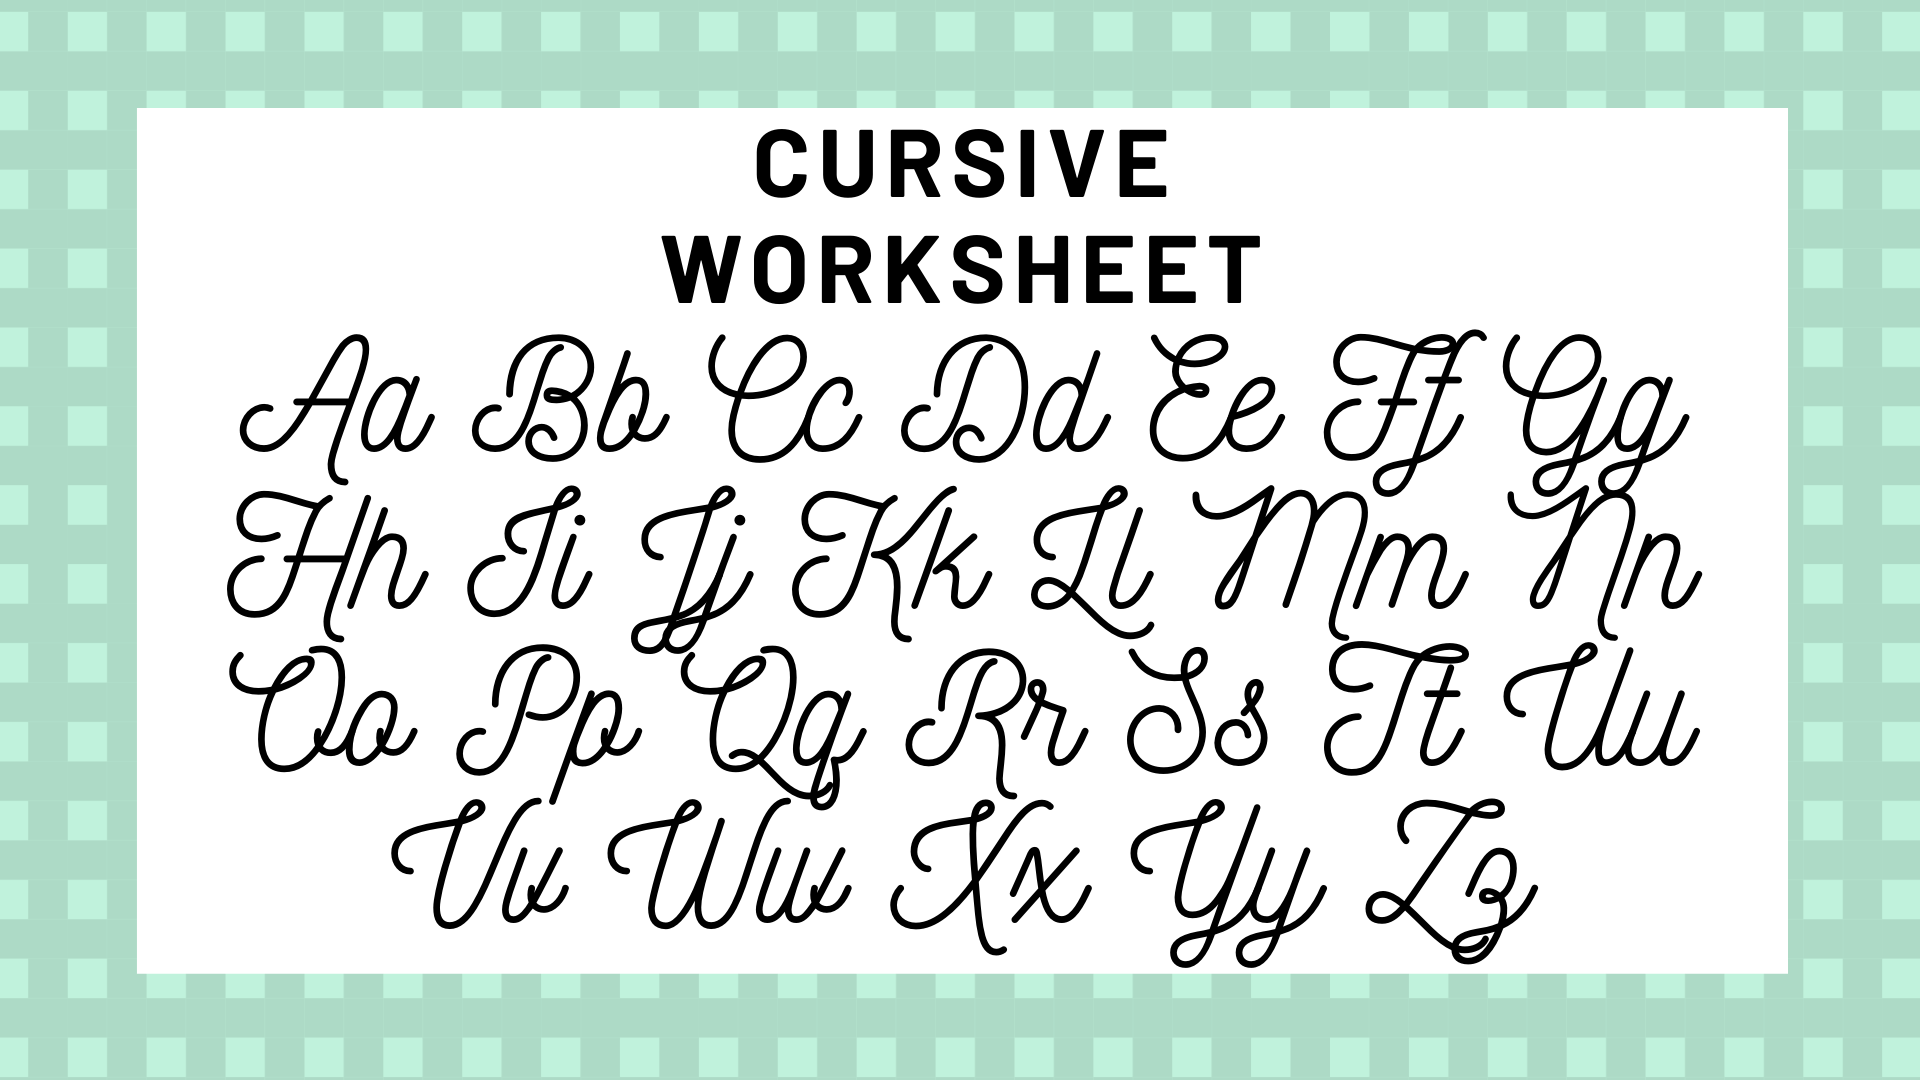 hight resolution of Cursive Alphabet: Your Guide To Cursive Writing   Science Trends